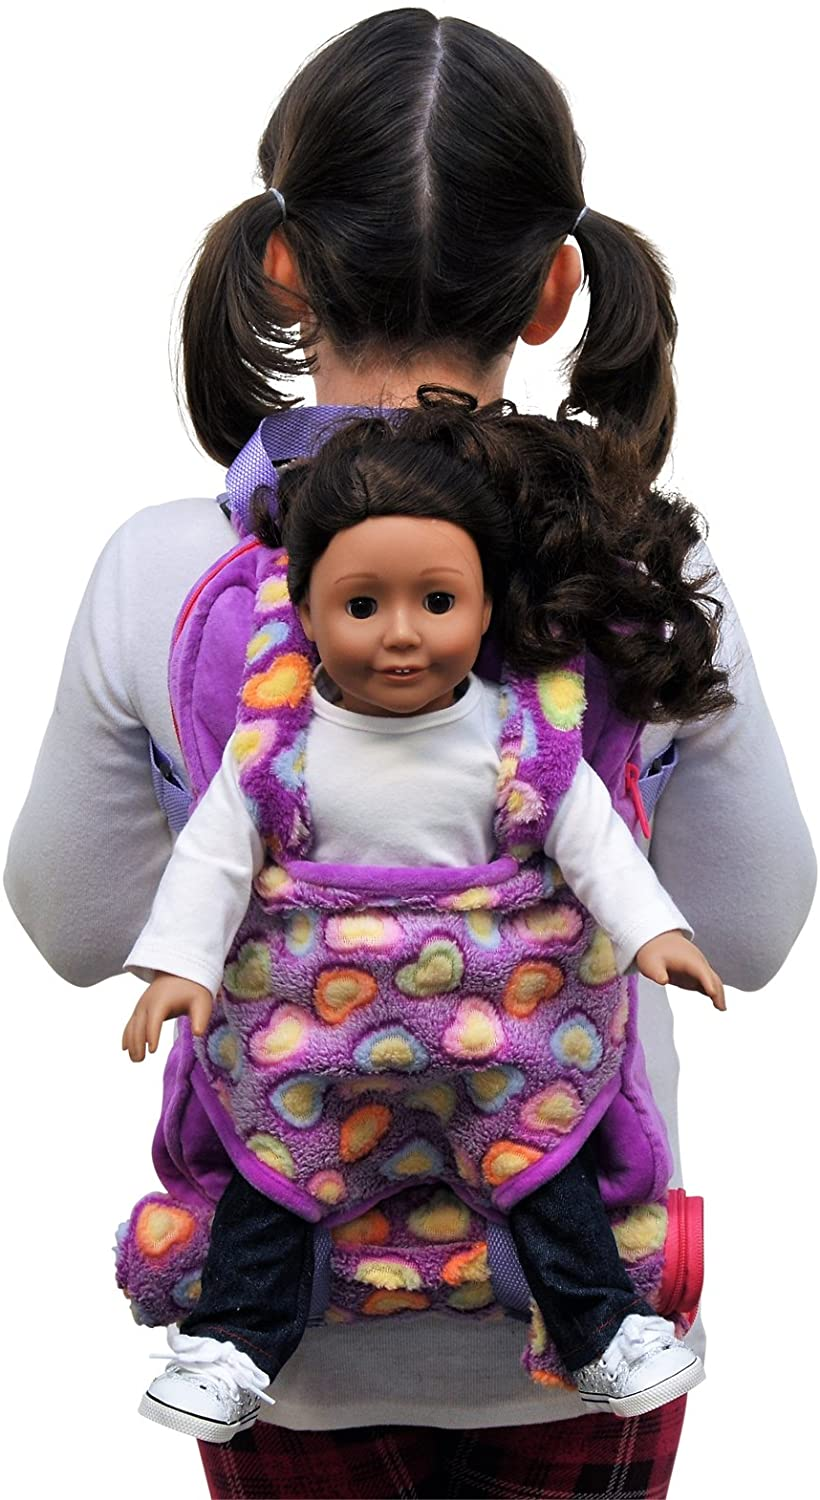 The Queen's Treasures Purple Soft Fancy Baby Doll Backpack Carrier and Sleeping Bag for 18 inch and 15 inch Dolls Designed to Be Compatible with American Girl Doll & Bitty Babies